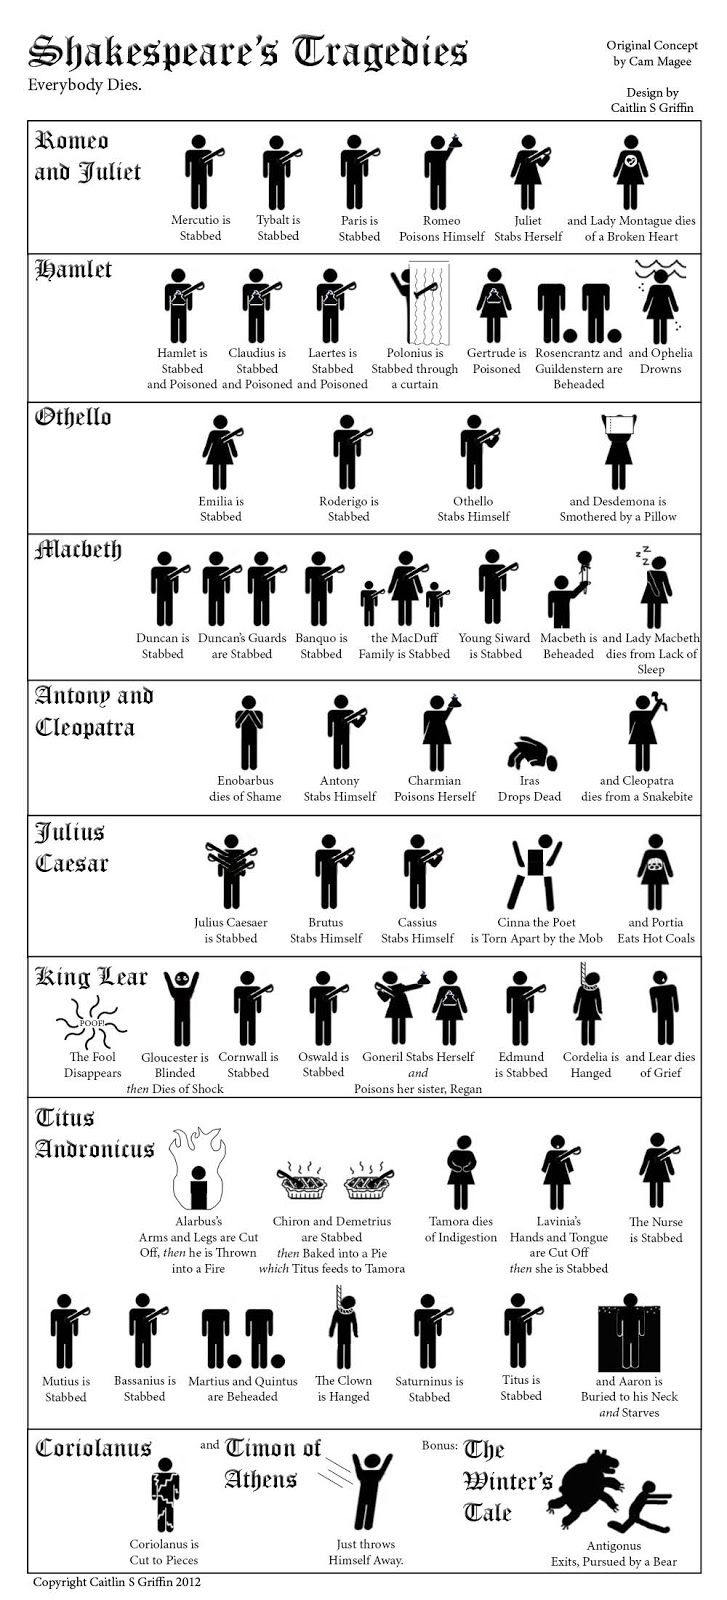 Wanna know how many people Shakespeare knocked off in his tragedies?  There's a chart for that!